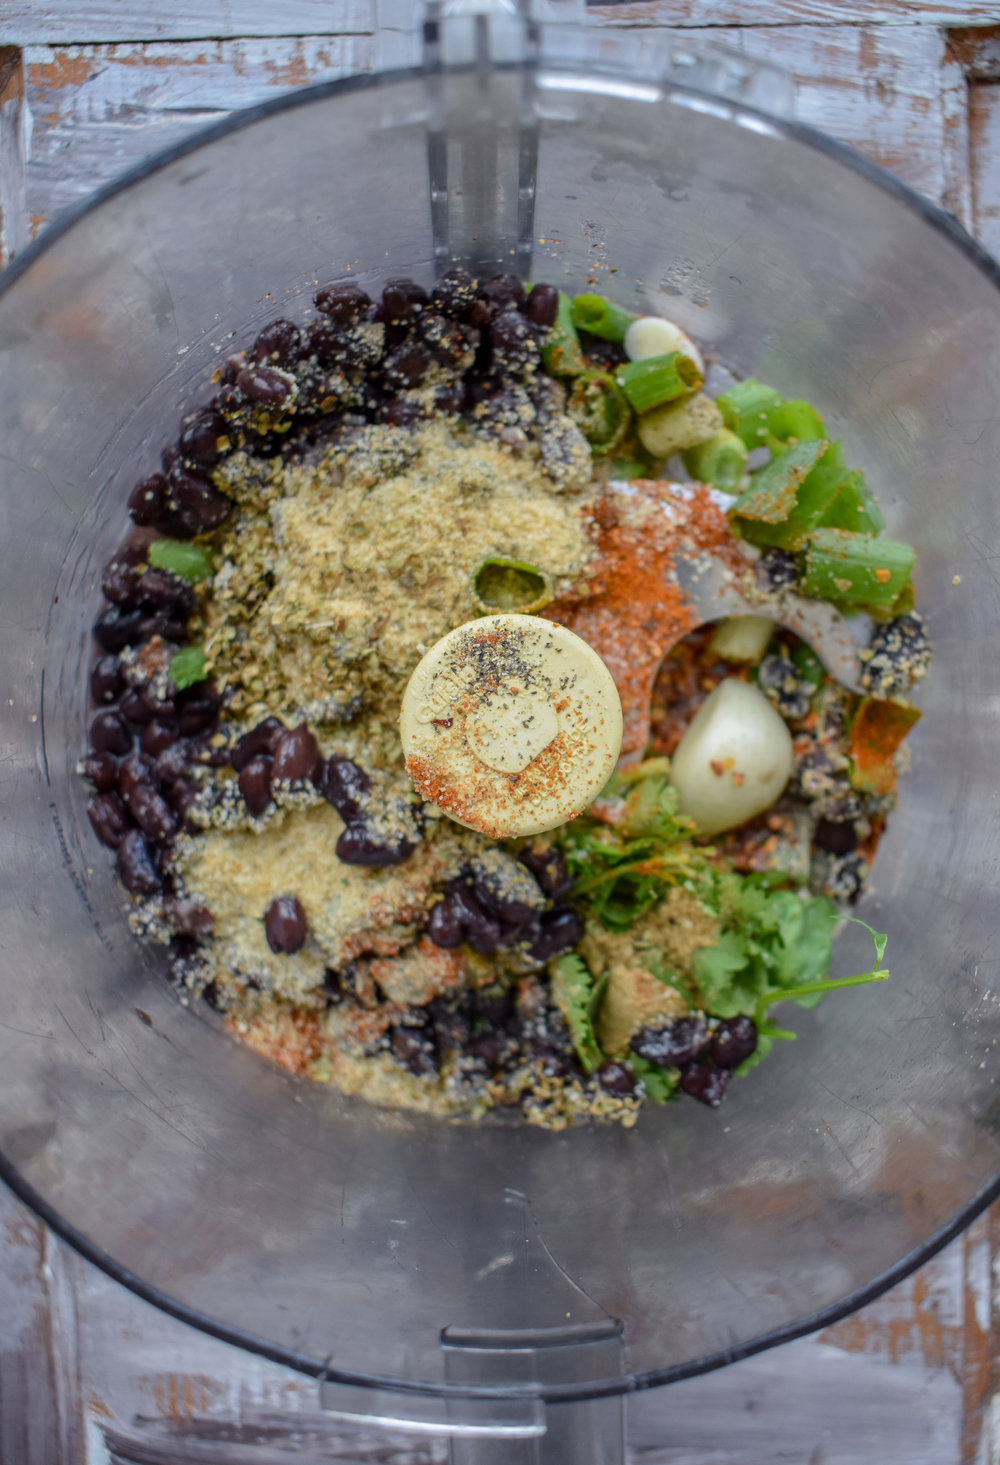 4. While the potatoes/carrot cook, add all the black bean cake ingredients to the food processor or high speed blender. Pulse 15-20 times till blended. Do not turn on and blend straight as it will make it too paste-like.